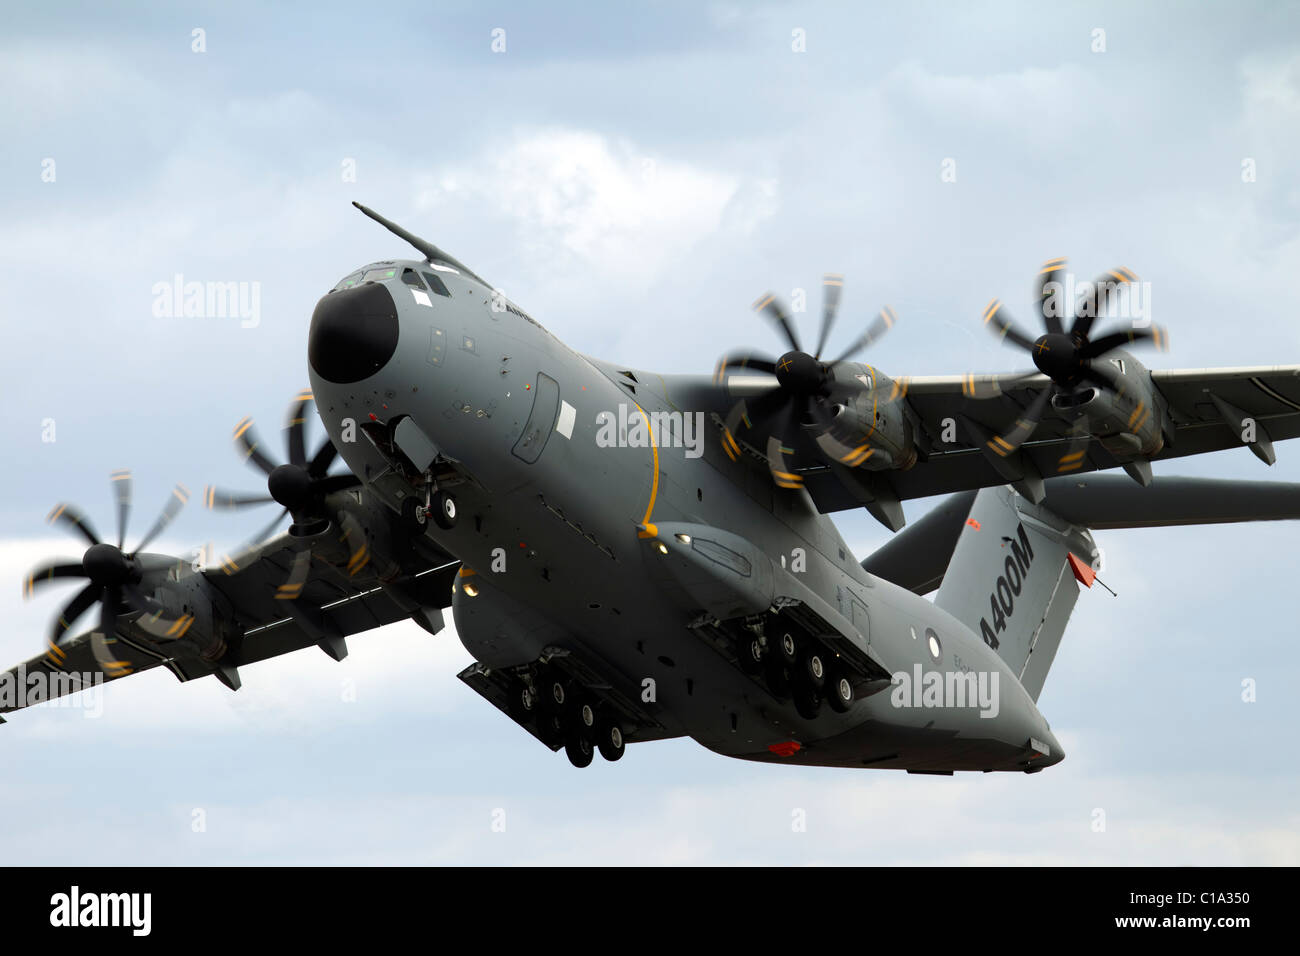 Airbus Military A400M Tactical Transport Aircraft - Stock Image